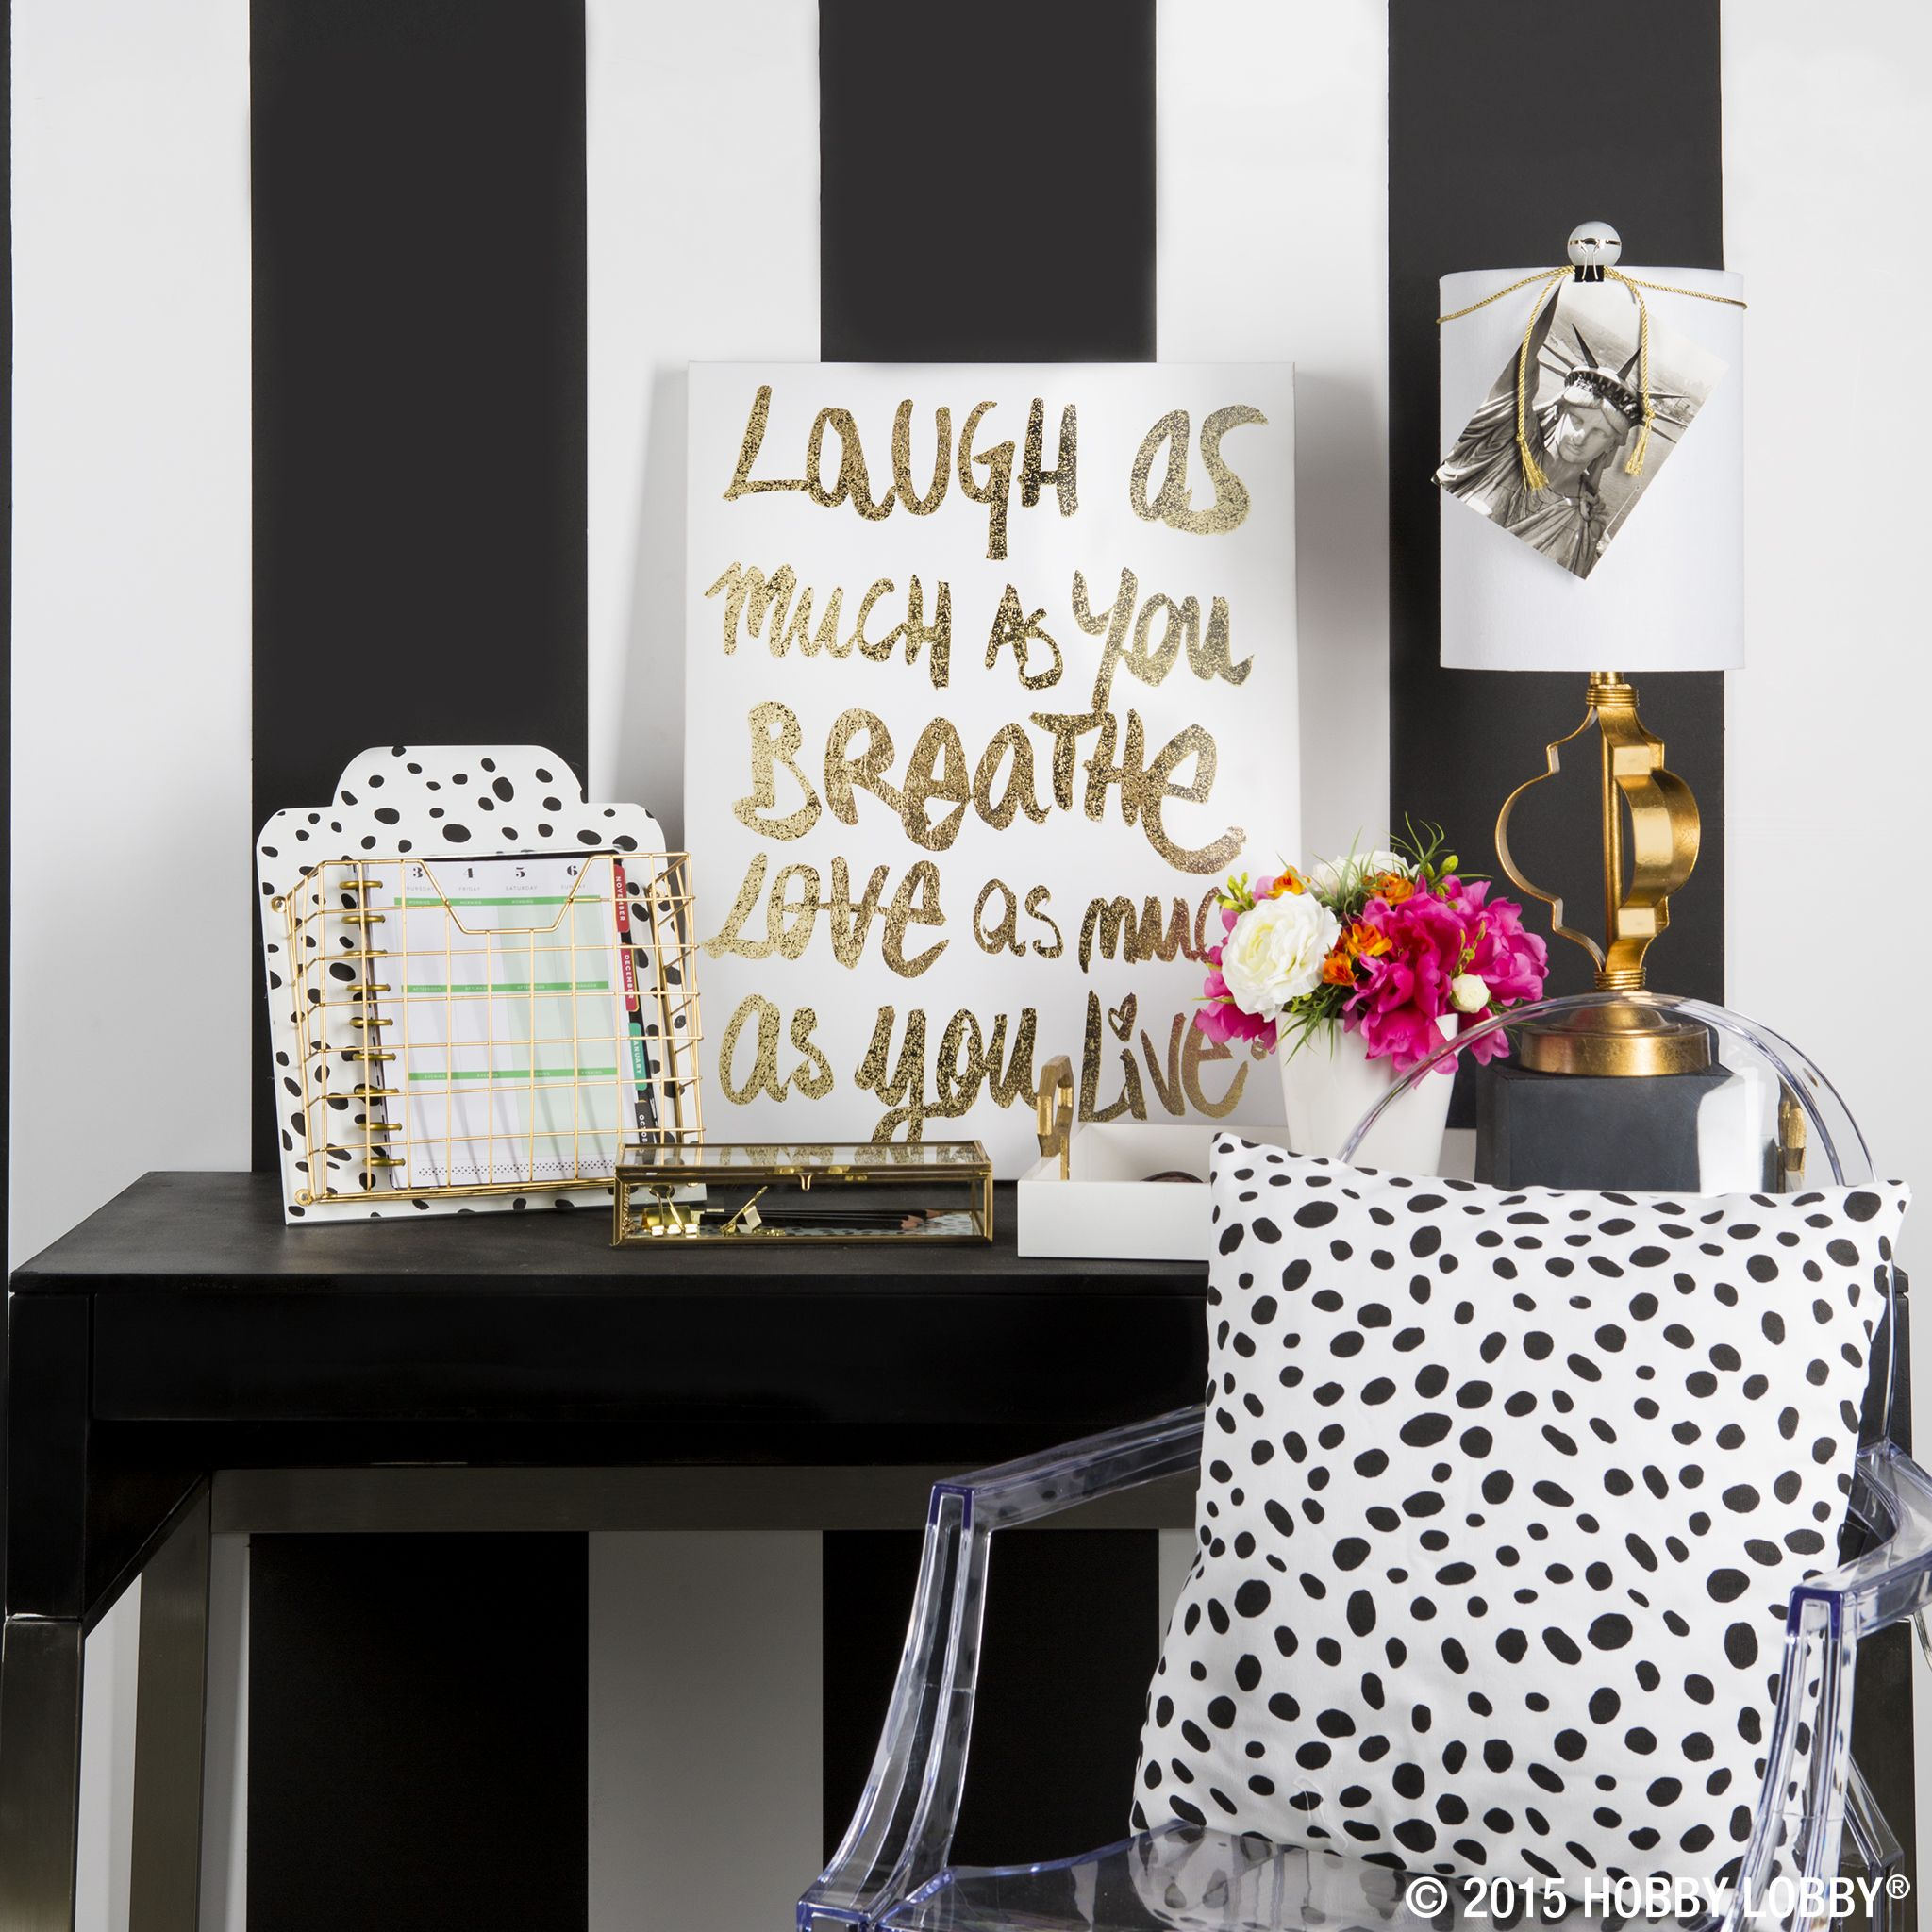 Black And Gold Is The Latest Trend In Home Decor. Are You